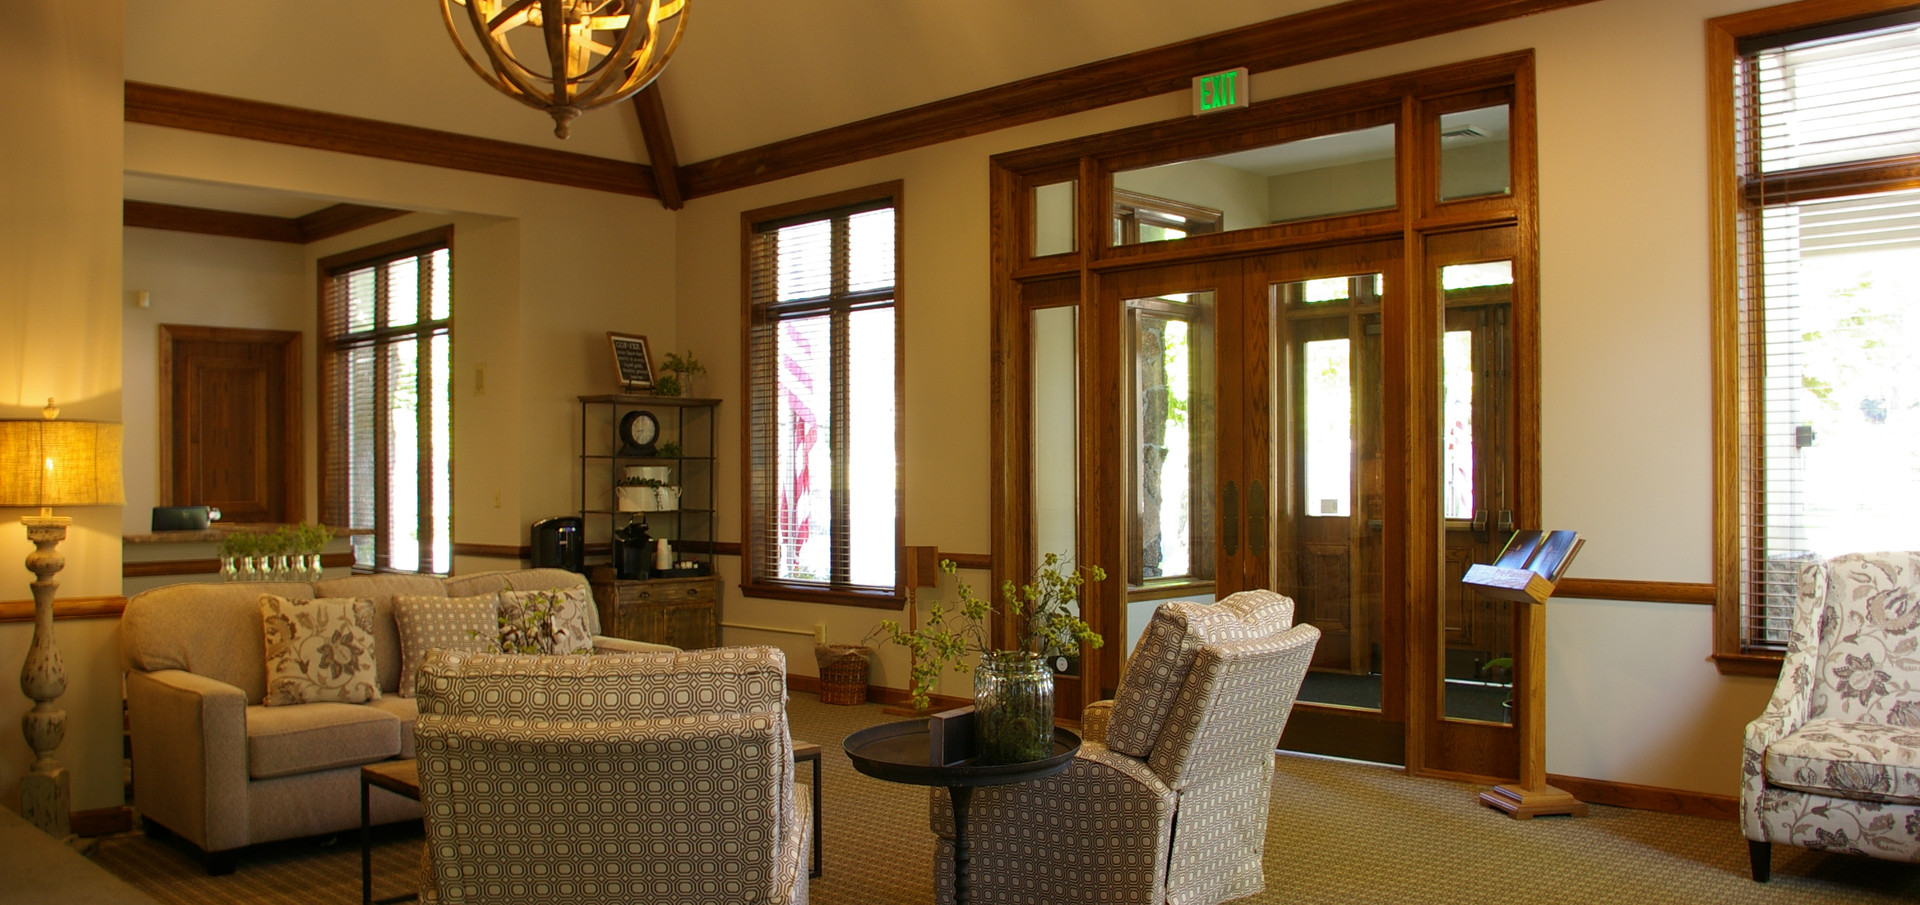 entrance seating